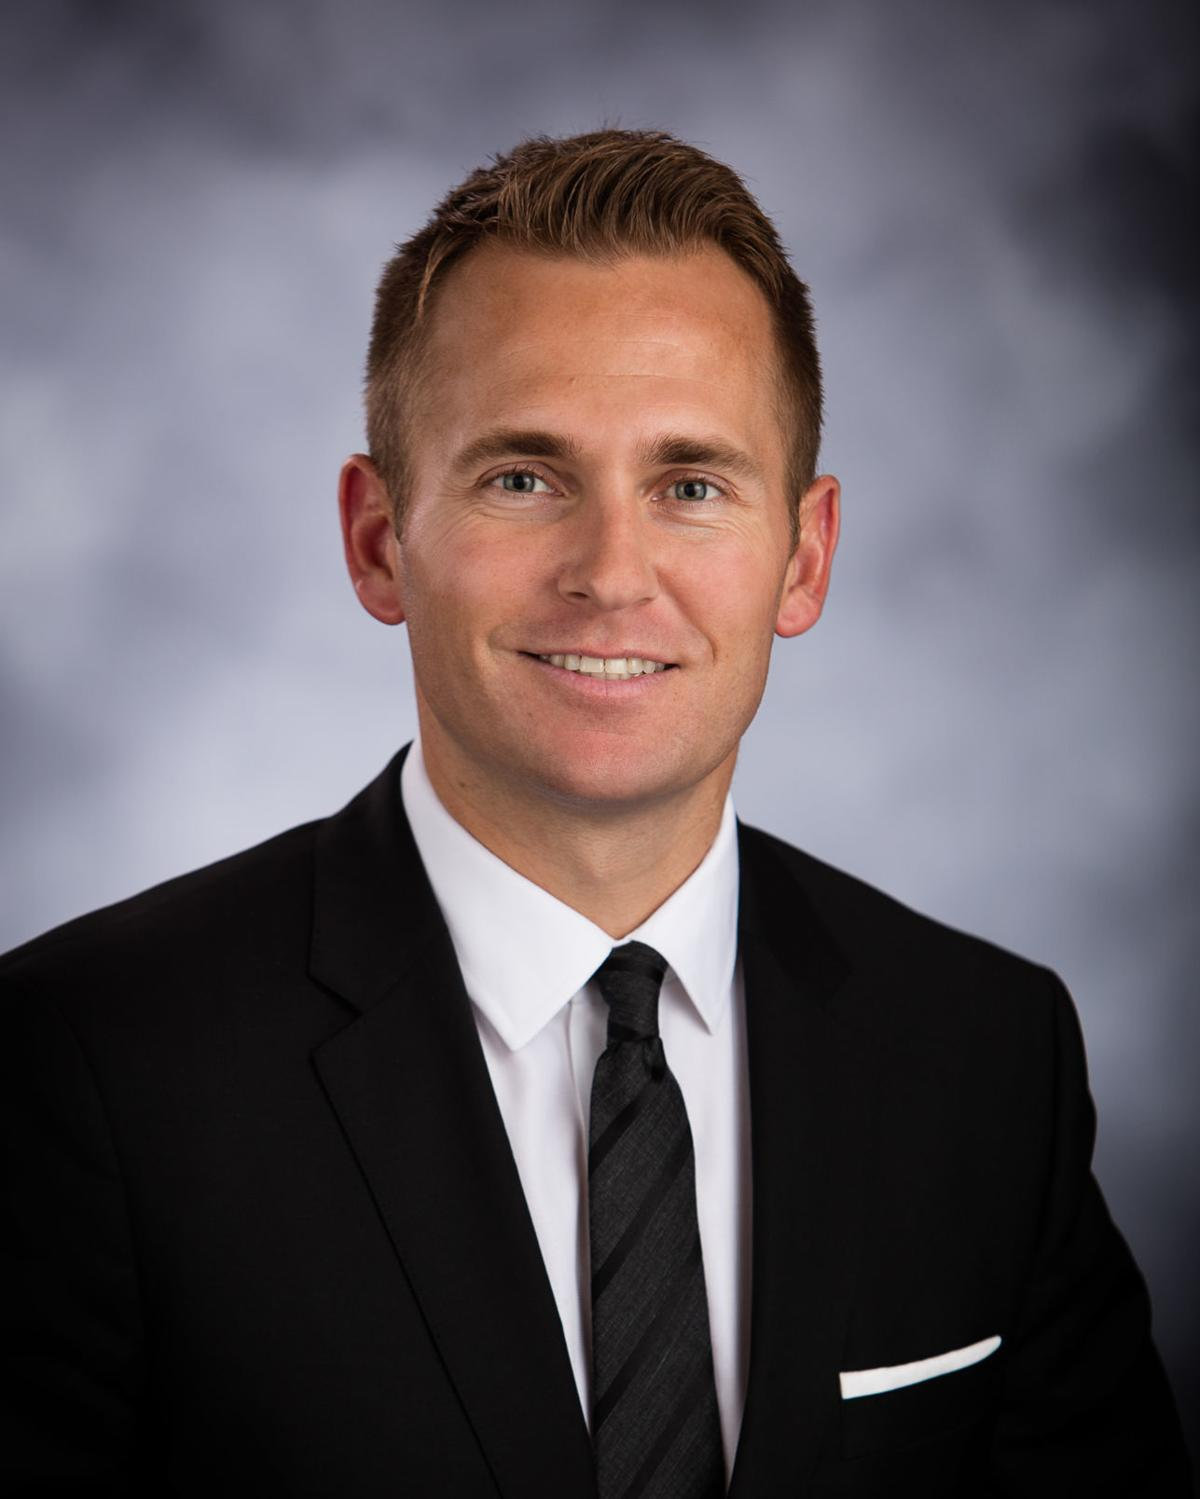 West Gate Bank promotes Ashburn and Bauer